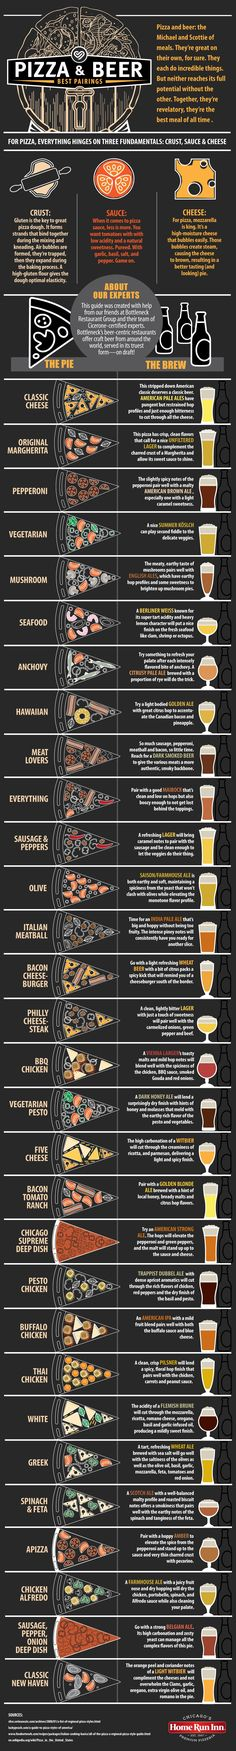 Beer is great and pizza is amazing, but when you have both at the same time it's one of the best meals known to man. Still, the subtle, nuanced flavors of different beers can be even better with the right pizza pairing. More #craftbeer #beer